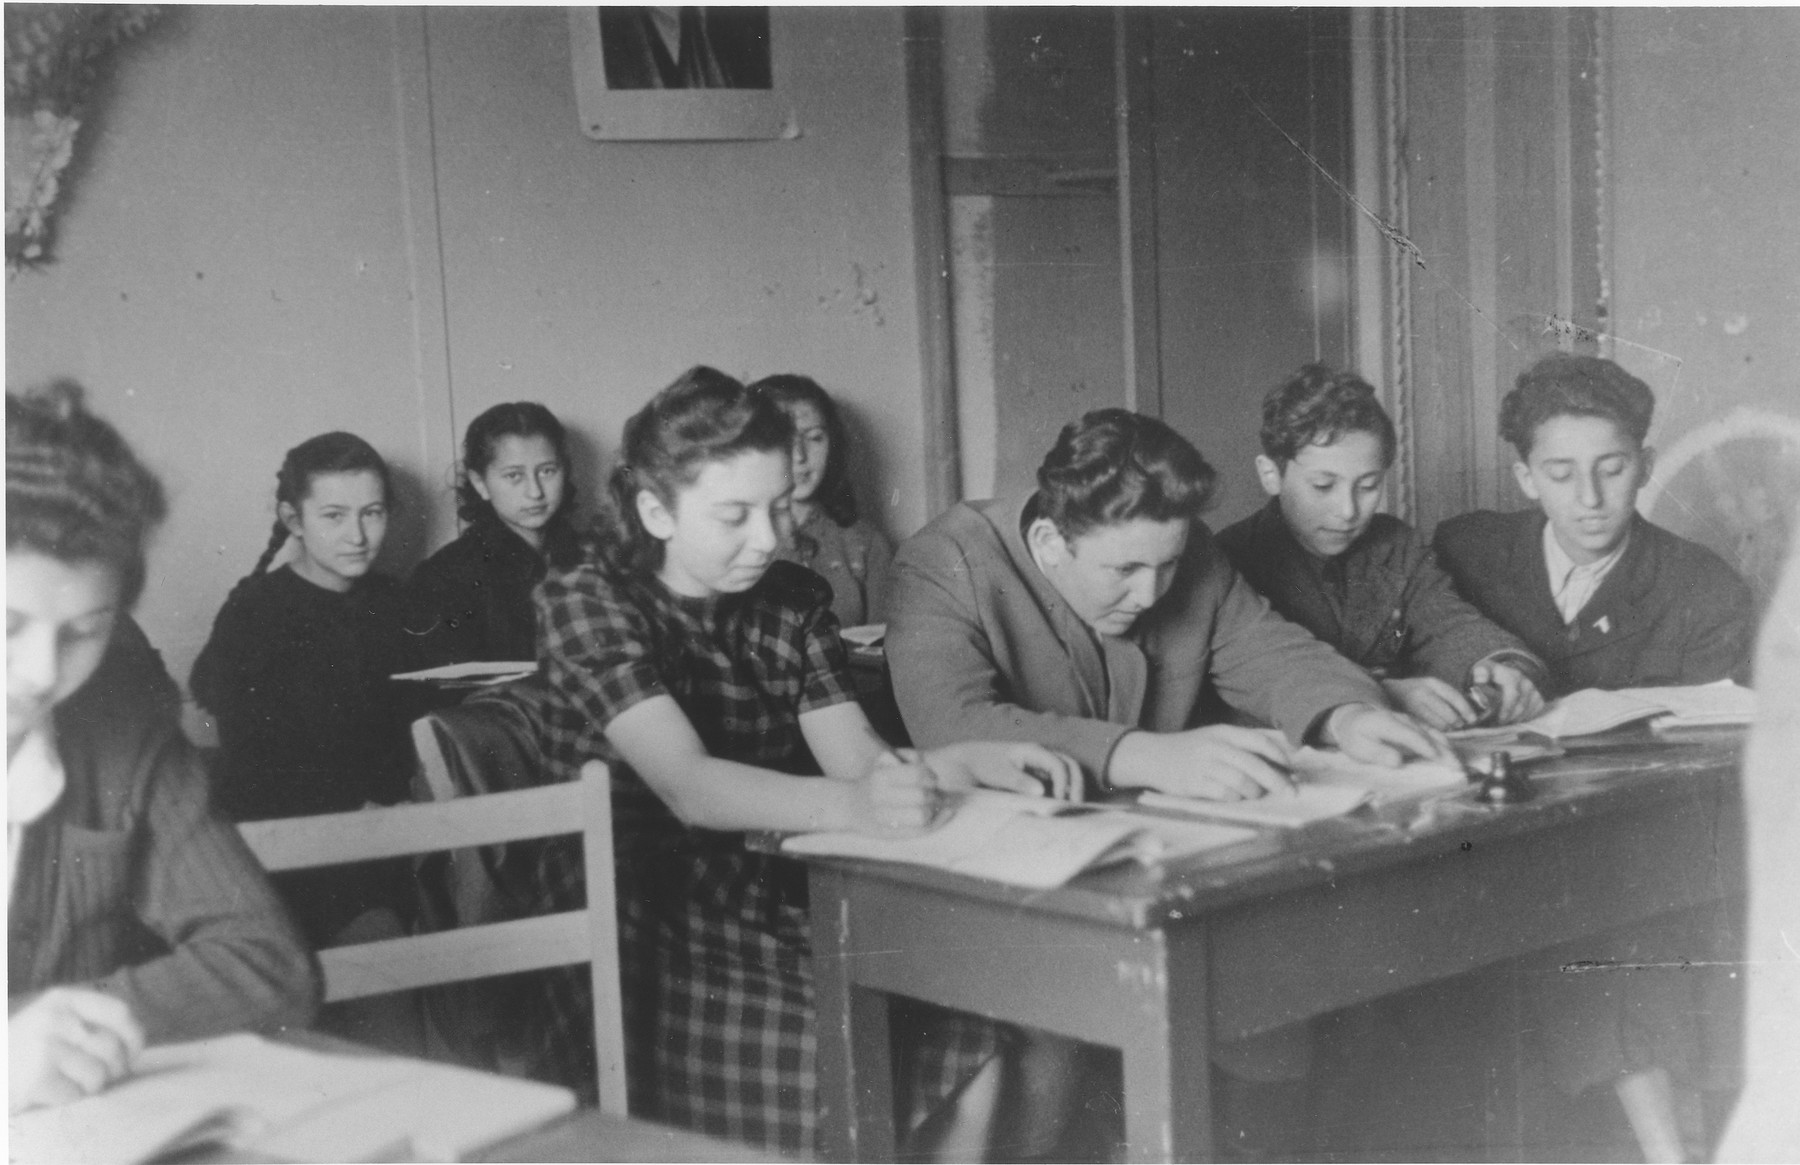 High school students at the Schlachtensee displaced persons camp study in a classroom.  Among those pictured is Shaya Zycer (third from right).